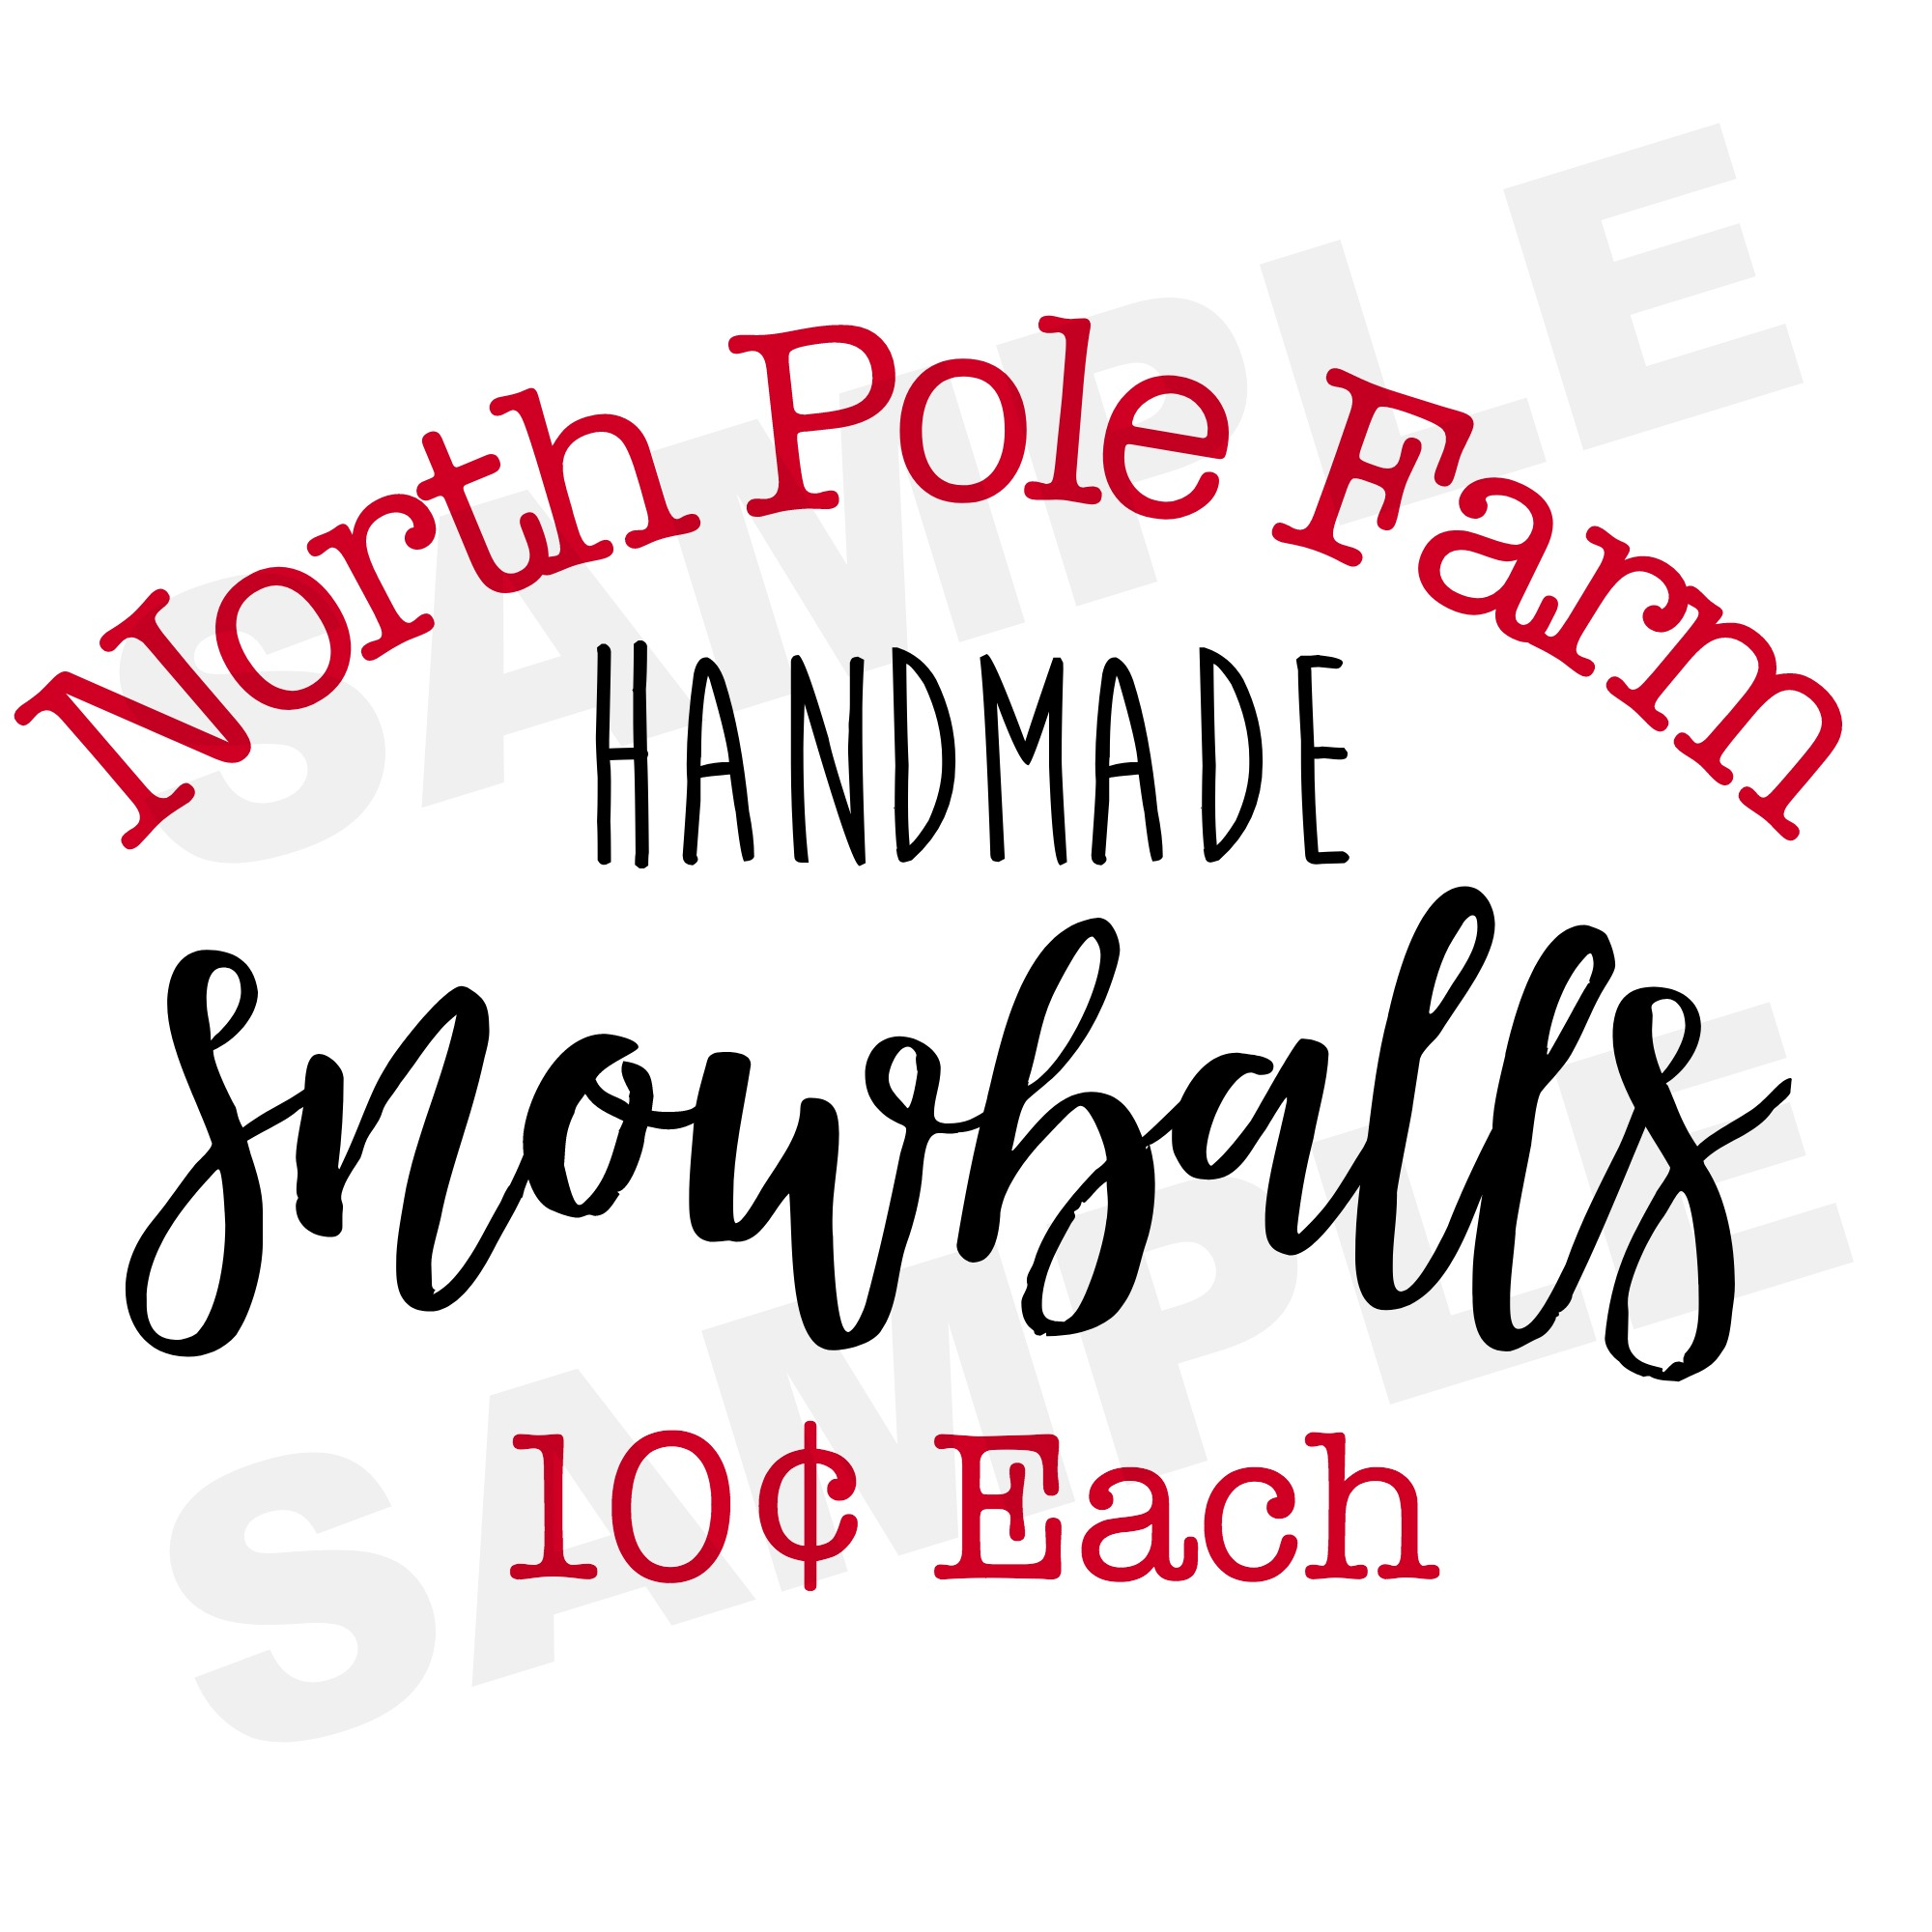 North Pole Farm Snowballs Printable | The Everyday Home